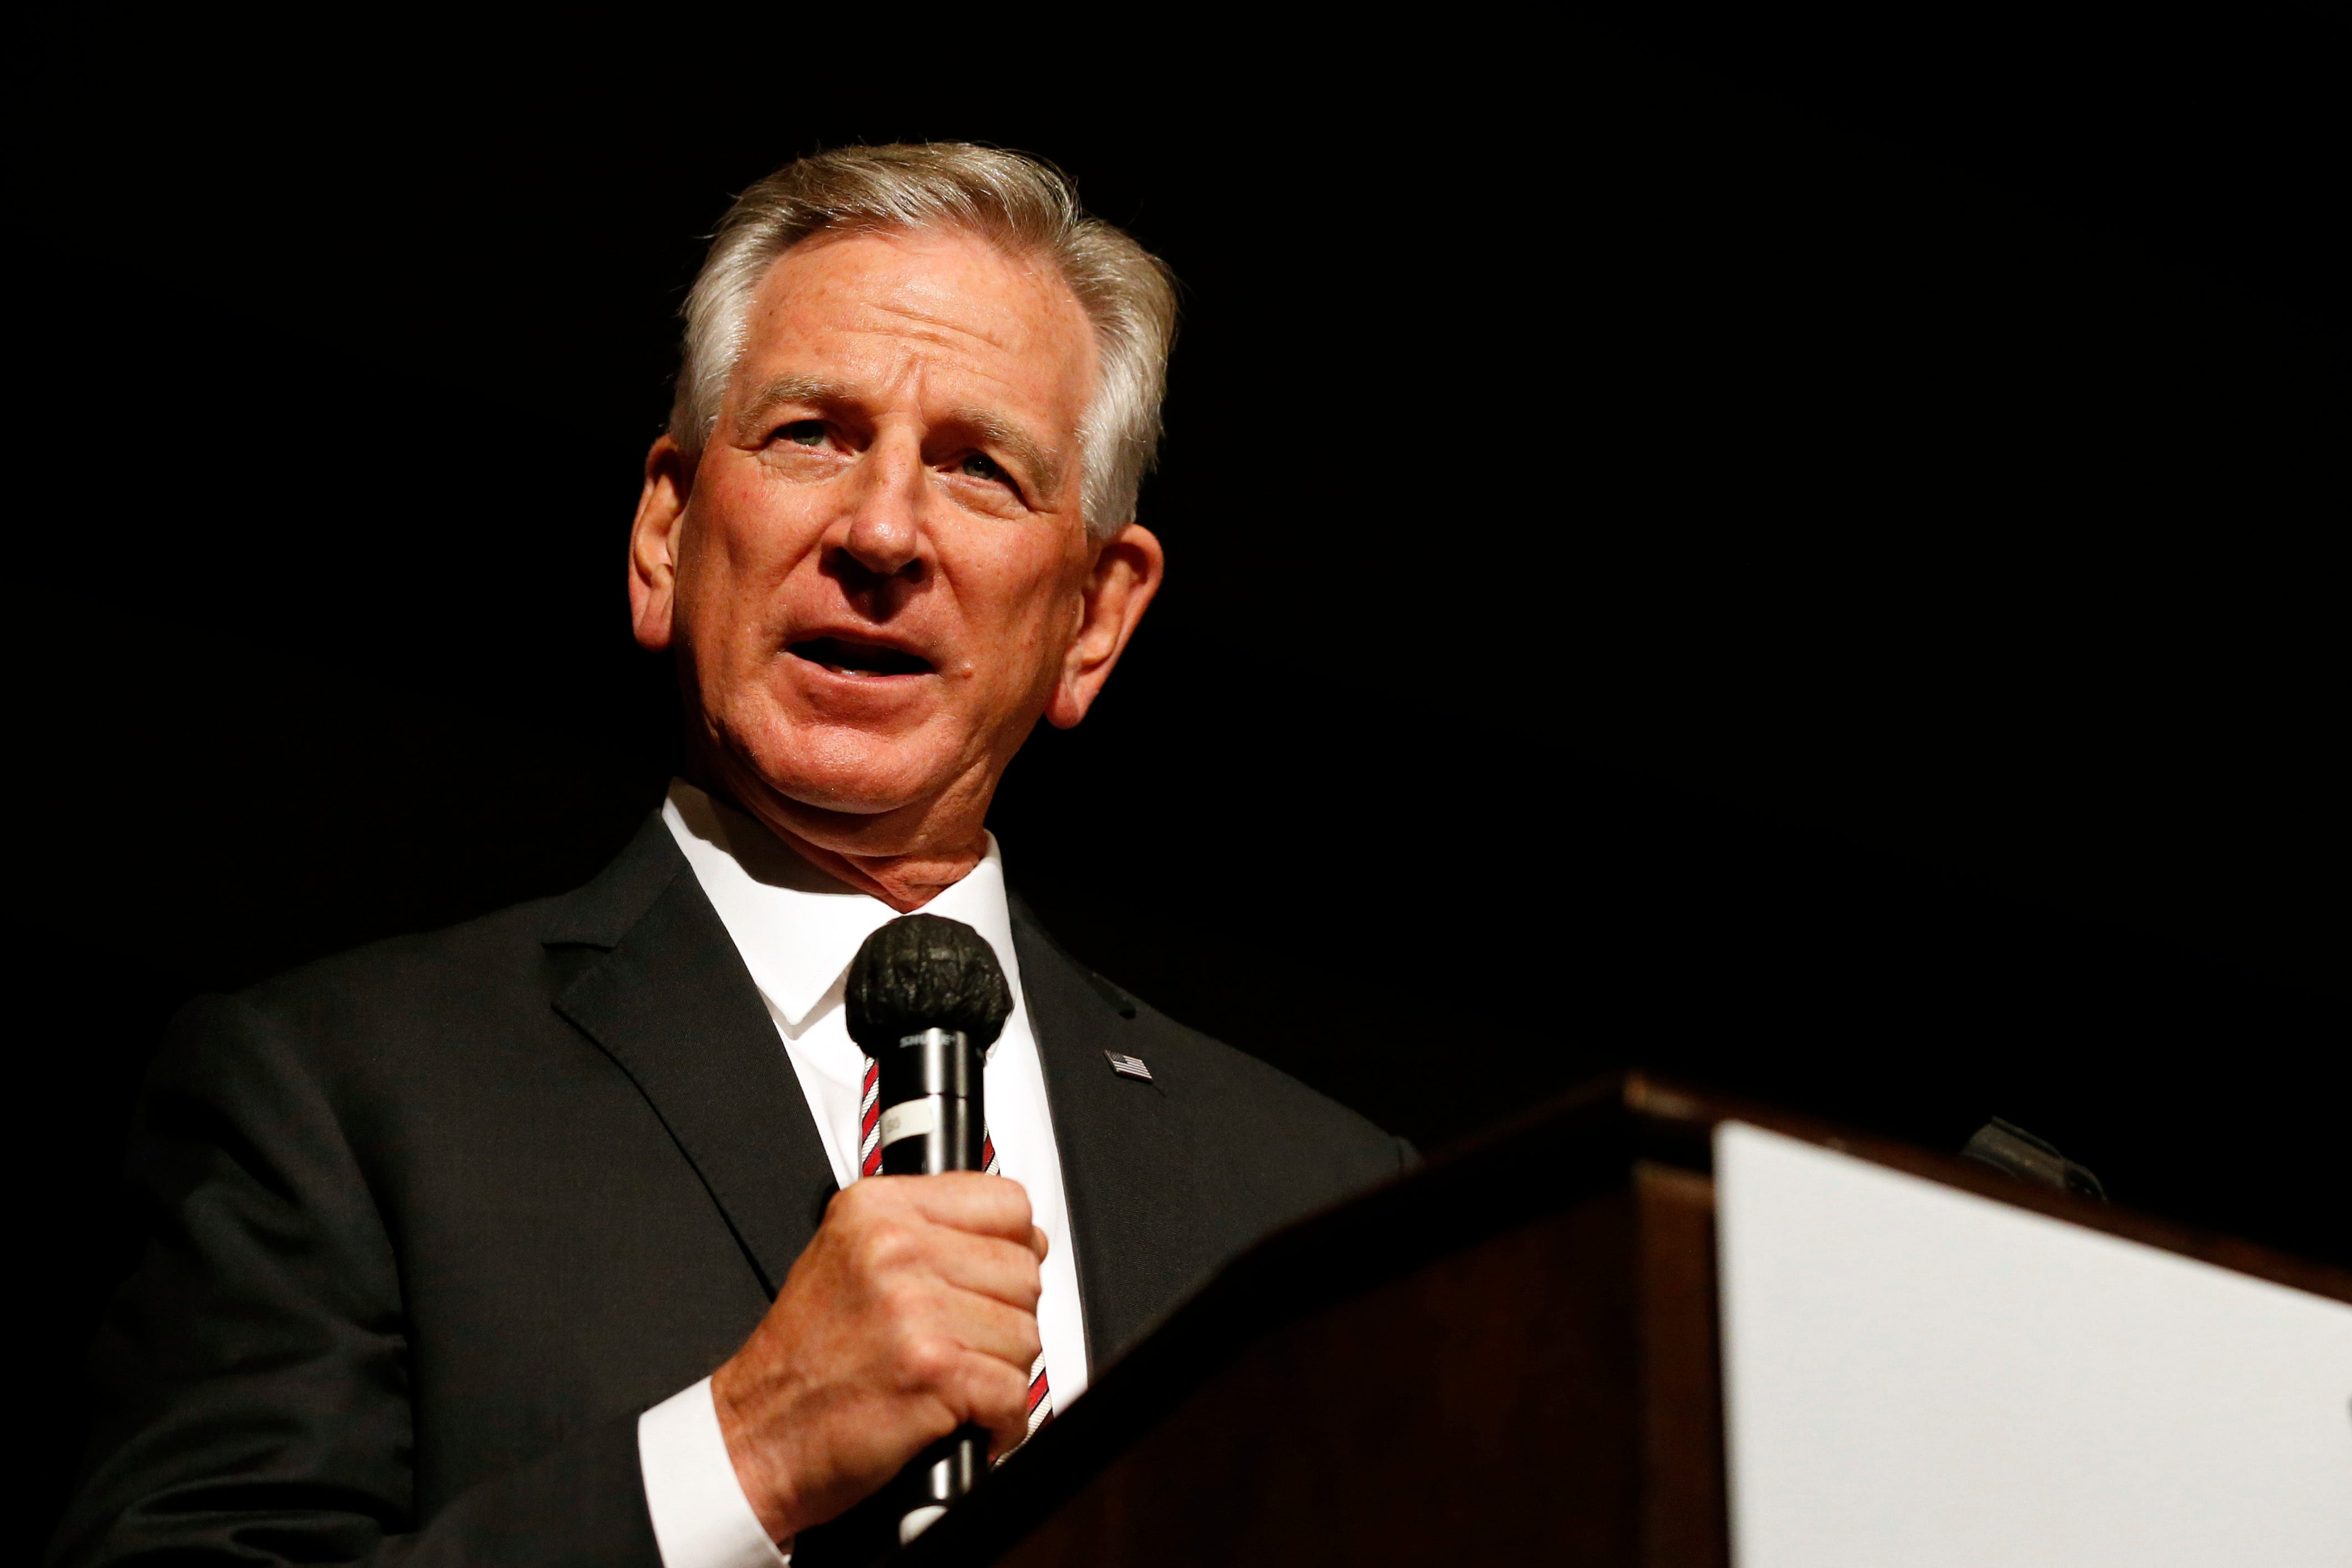 Ex-Auburn coach Tommy Tuberville's race for US Senate seat short on substance, insiders say